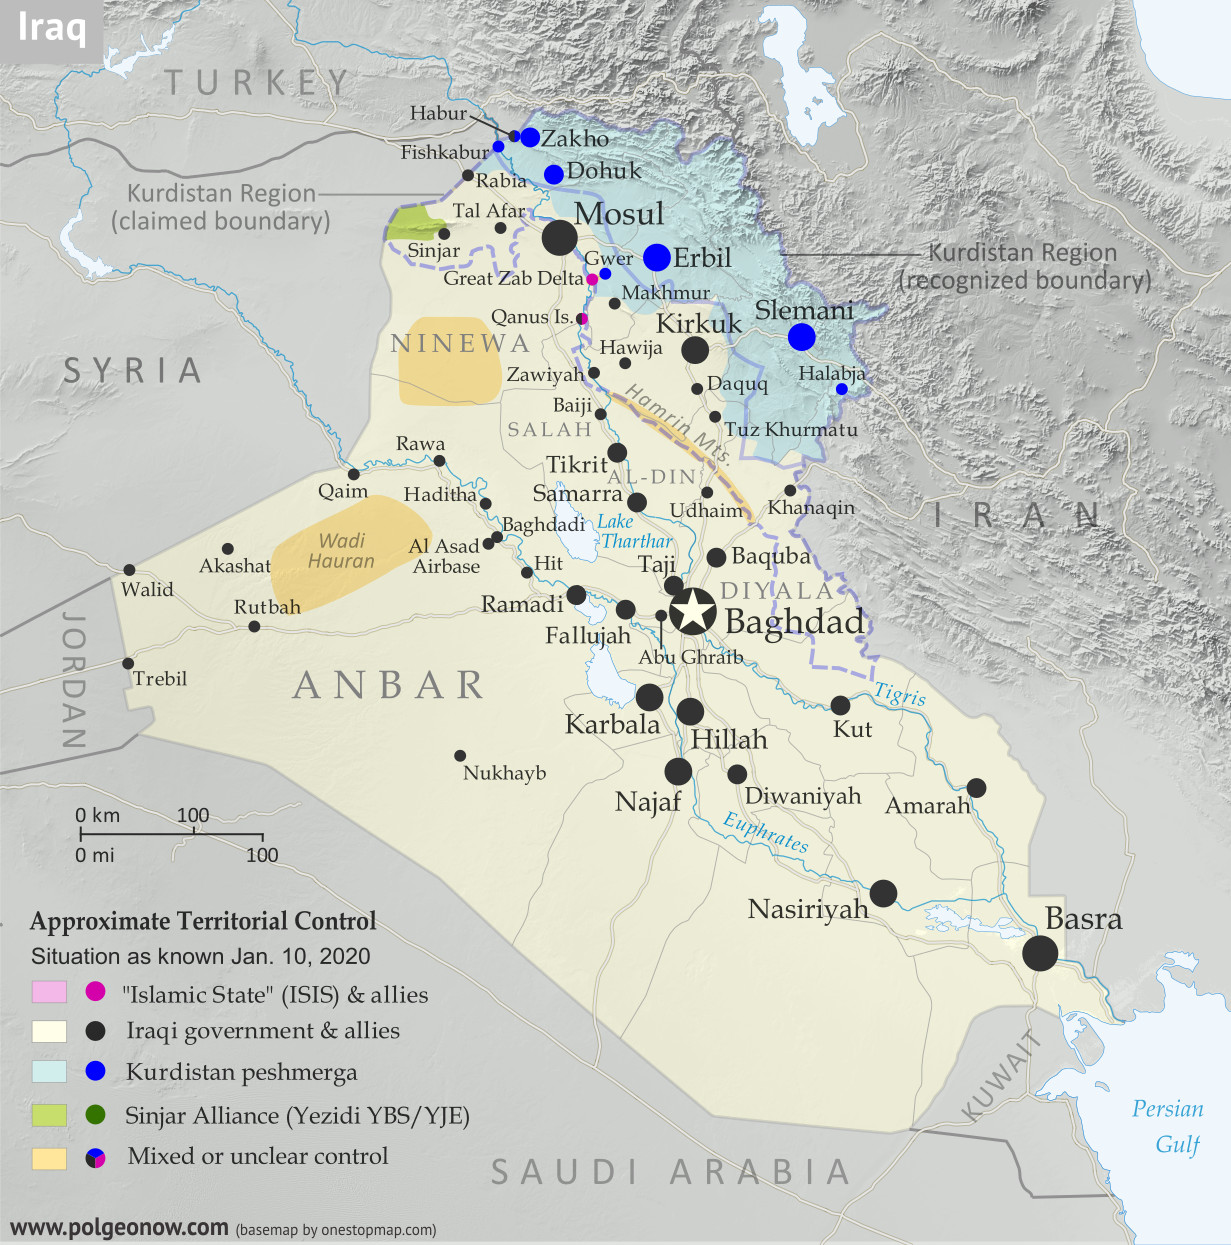 Iraq Control Map 2020, updated to January 10. Shows areas of Iraq under ISIS control (Islamic State/ISIL/Daesh), and under the control of the Baghdad government, the Kurdistan Peshmerga, and the Yezidi Sinjar Alliance (YBS and YJE). Colorblind accessible.